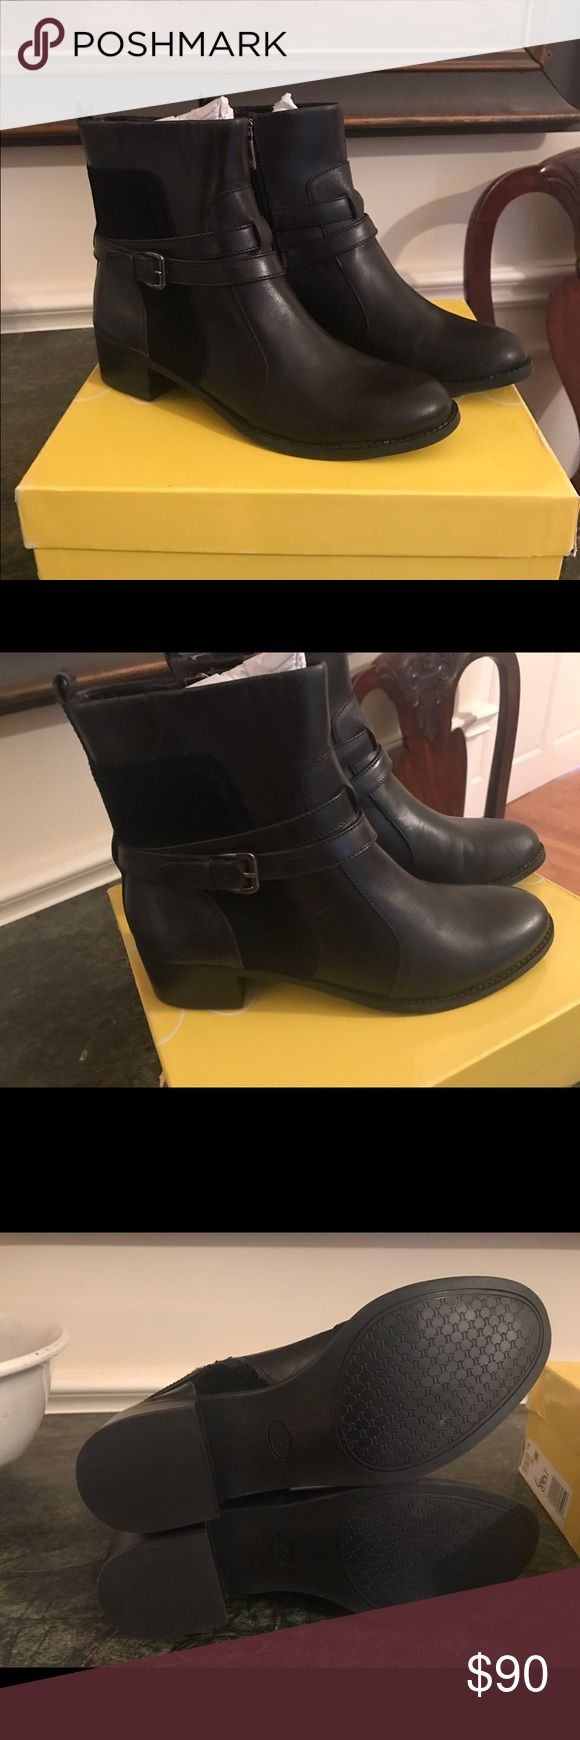 MARKDOWN New Circa Joan and David Bruna Boots Sz 7 Leather and suede upper. Inside-zip closure. Rounded toe. Harness strap detail. Synthetic lining. Lightly padded footbed. Stacked heel. Synthetic outsole Joan & David Shoes Ankle Boots & Booties